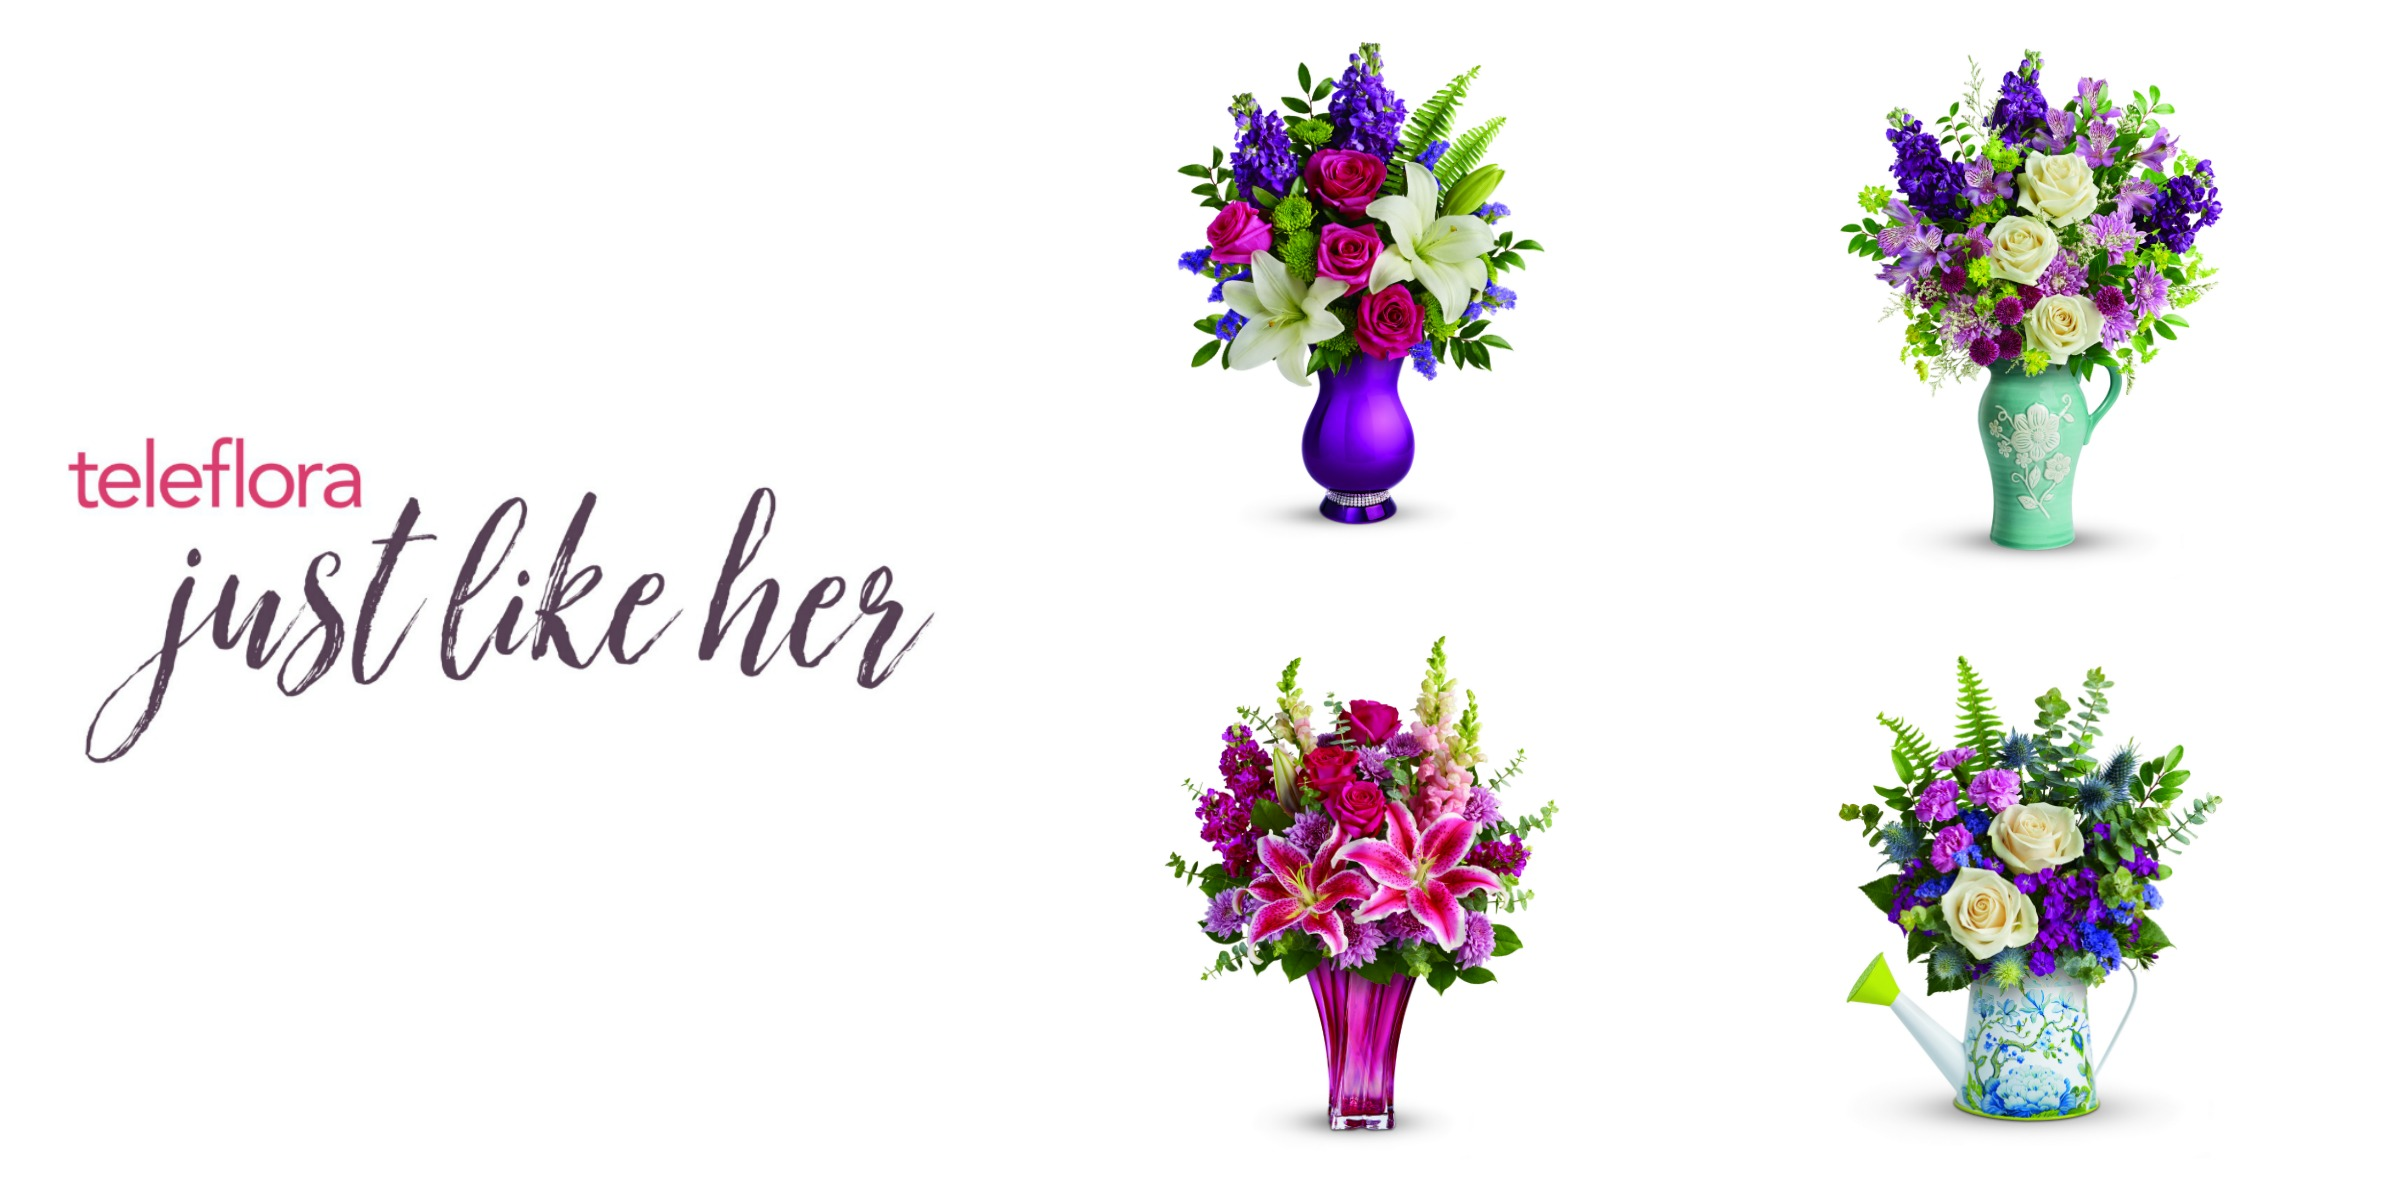 GIVEAWAY: Honor Mom This Mother's Day with Teleflora's Handmade Bouquets #ImJustLikeHer #Teleflora